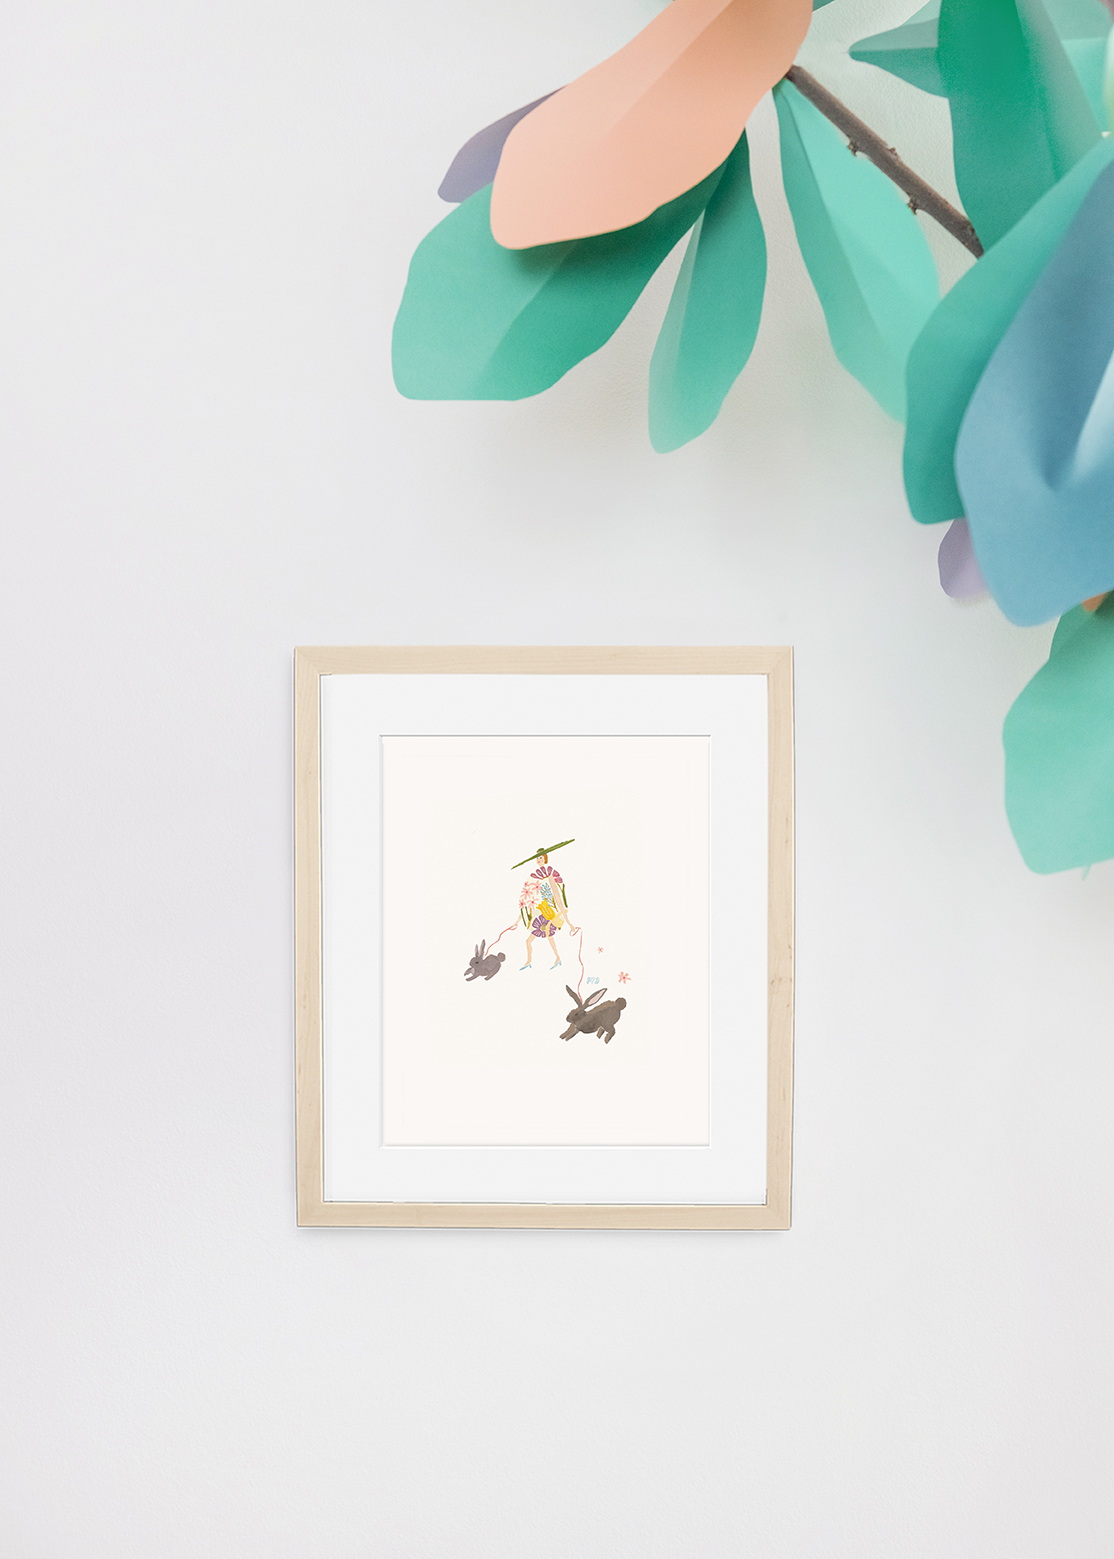 Art print of Easter Egg Lady by Monica Dorazewski on a white background with a paper tree on the side.